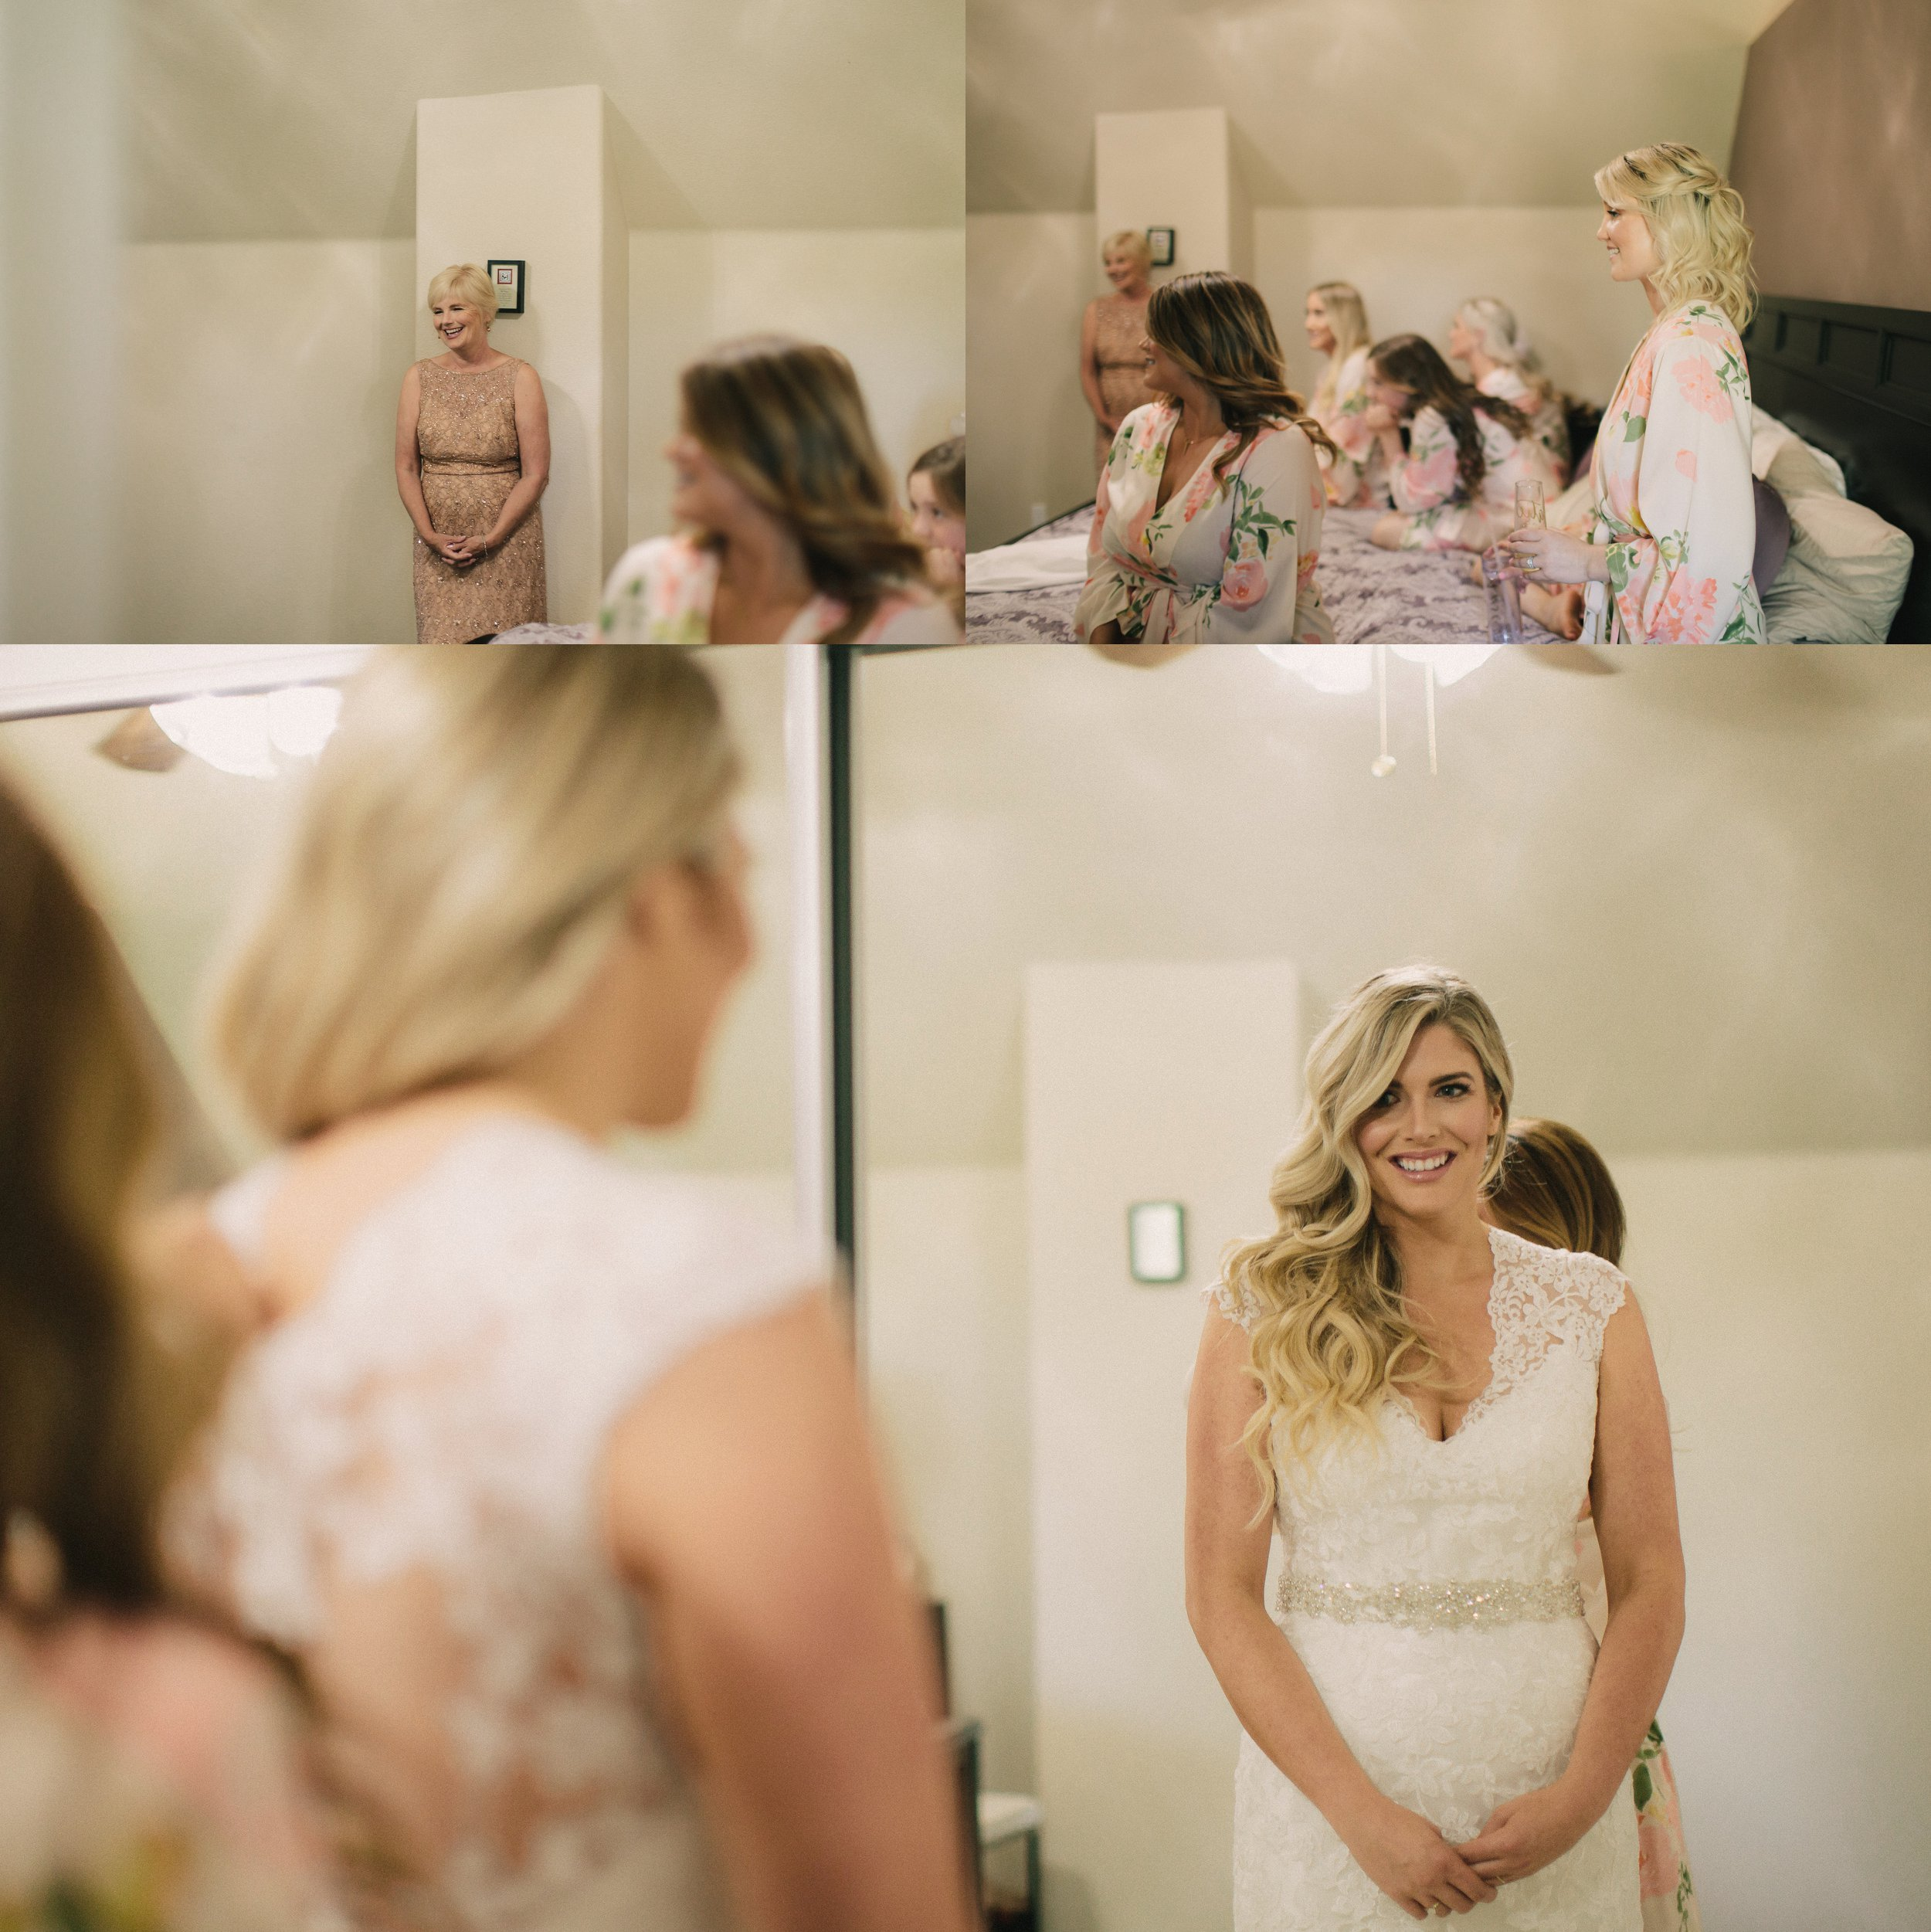 CaliforniaWedding|LindenCloverPhotography_0005.jpg